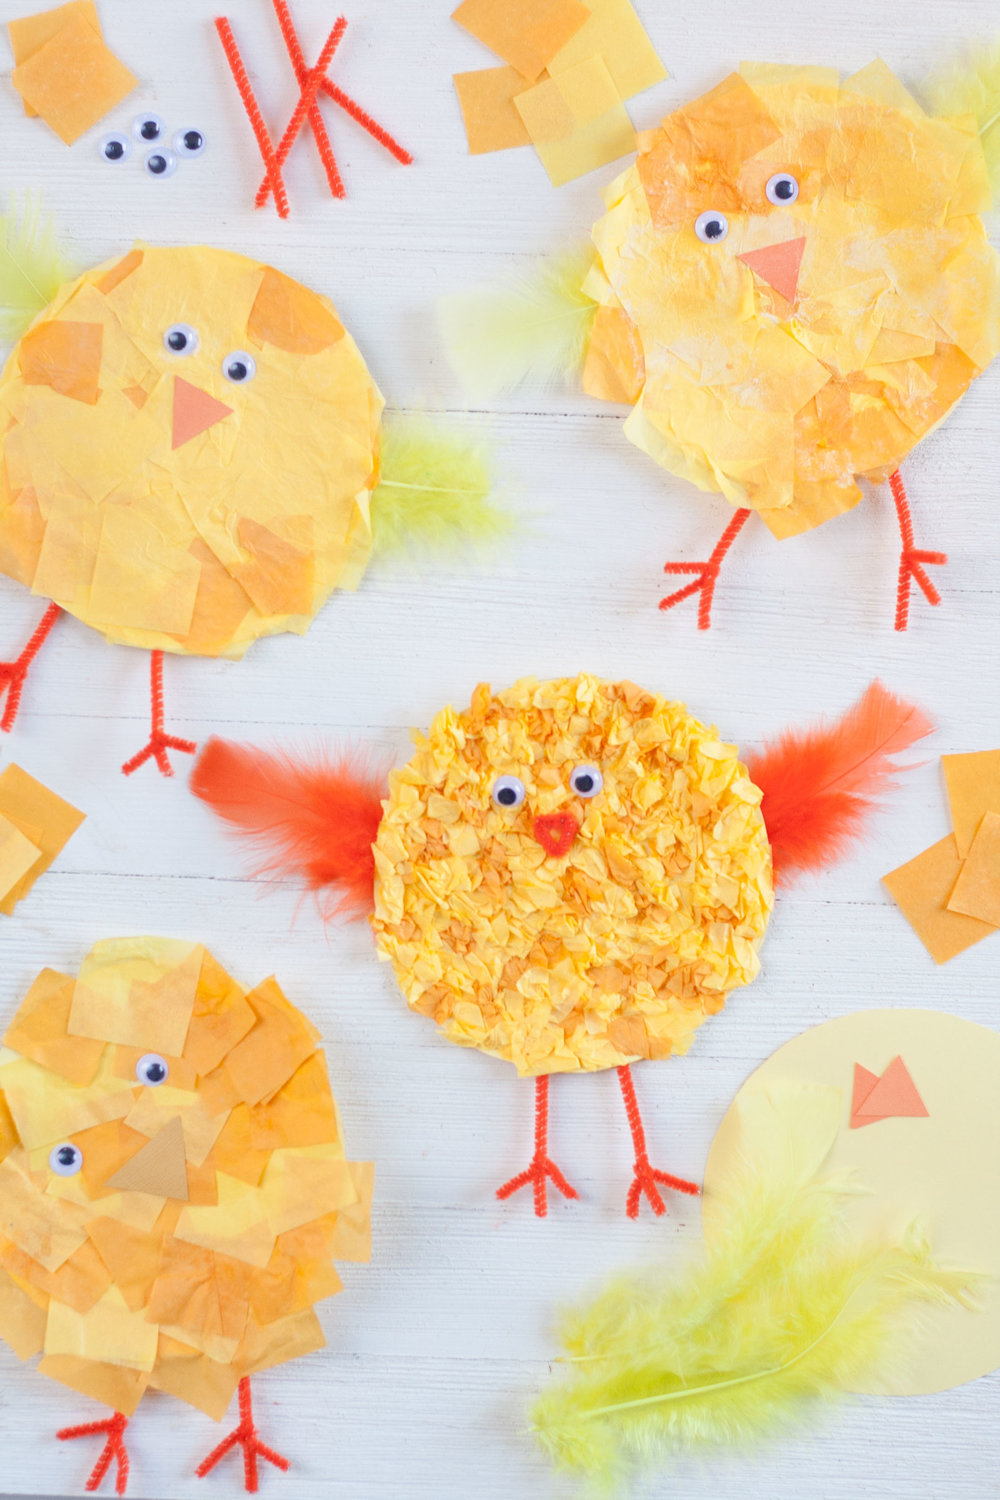 bit-and-bauble-easy-cheap-spring-easter-crafts-for-kids-toddlers-lamb-chick-egg-13.jpg